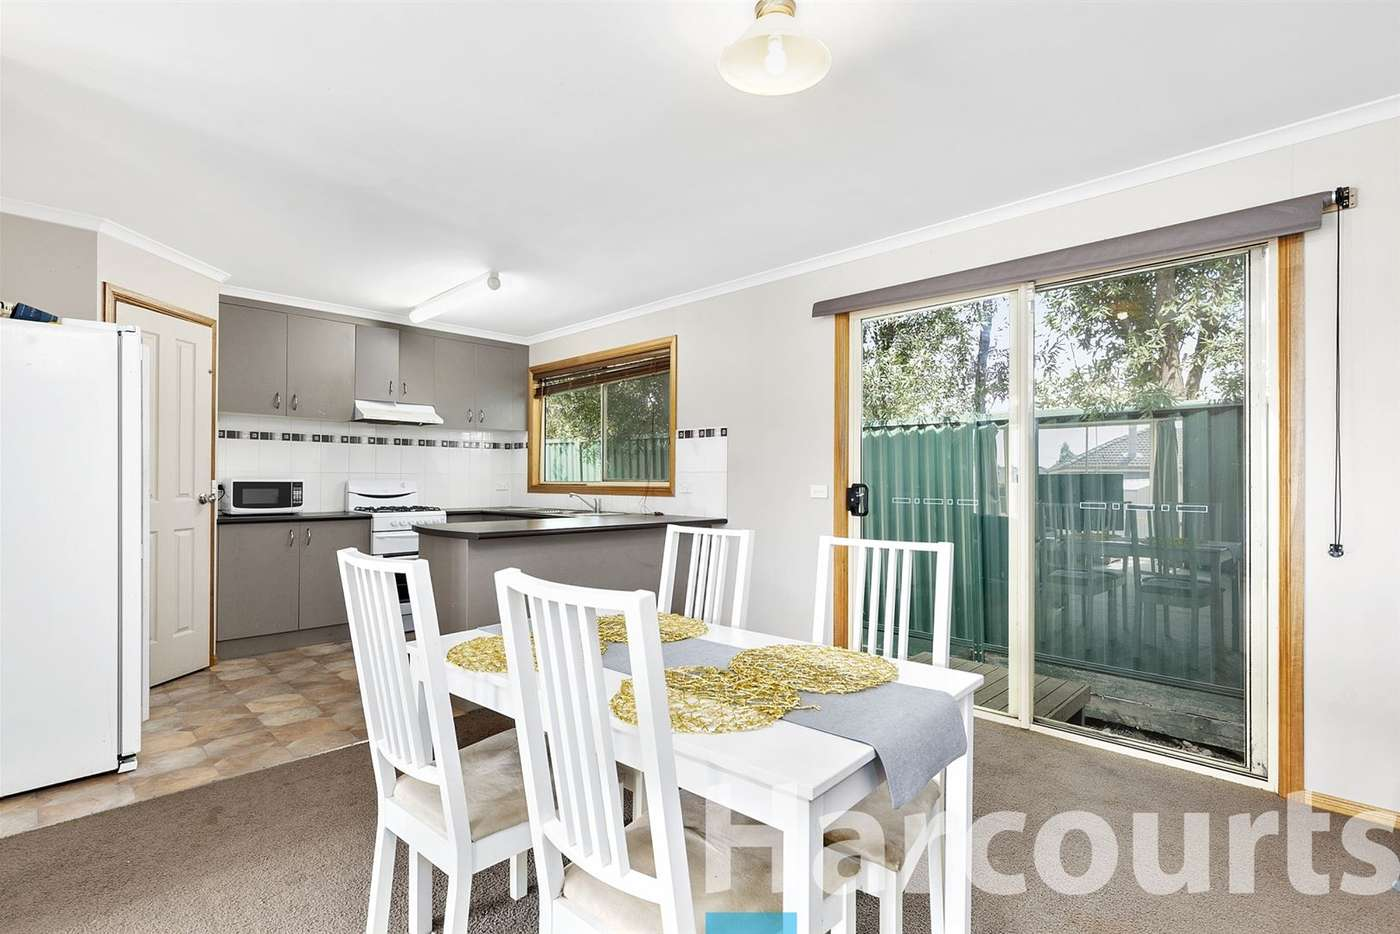 Sixth view of Homely house listing, 6 Paragon Court, Wendouree VIC 3355